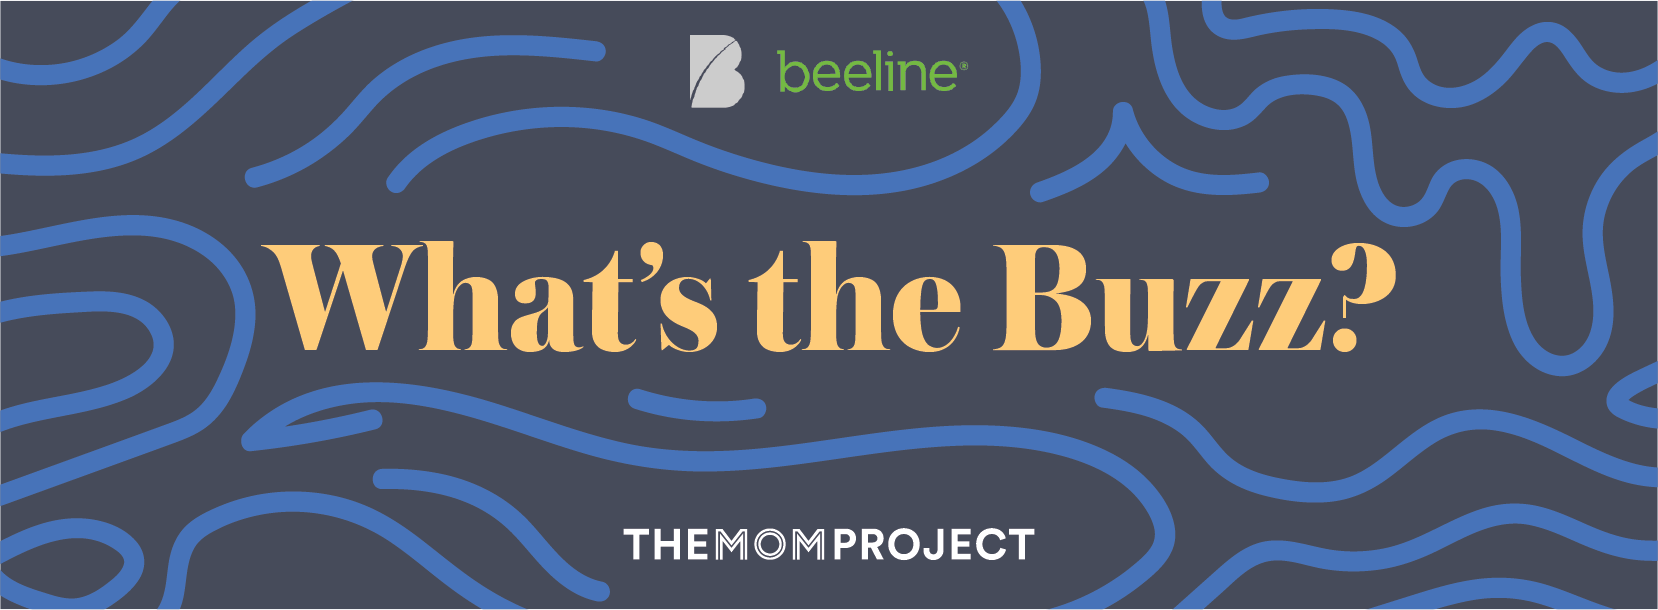 The Mom Project and Beeline are Creating a Buzz